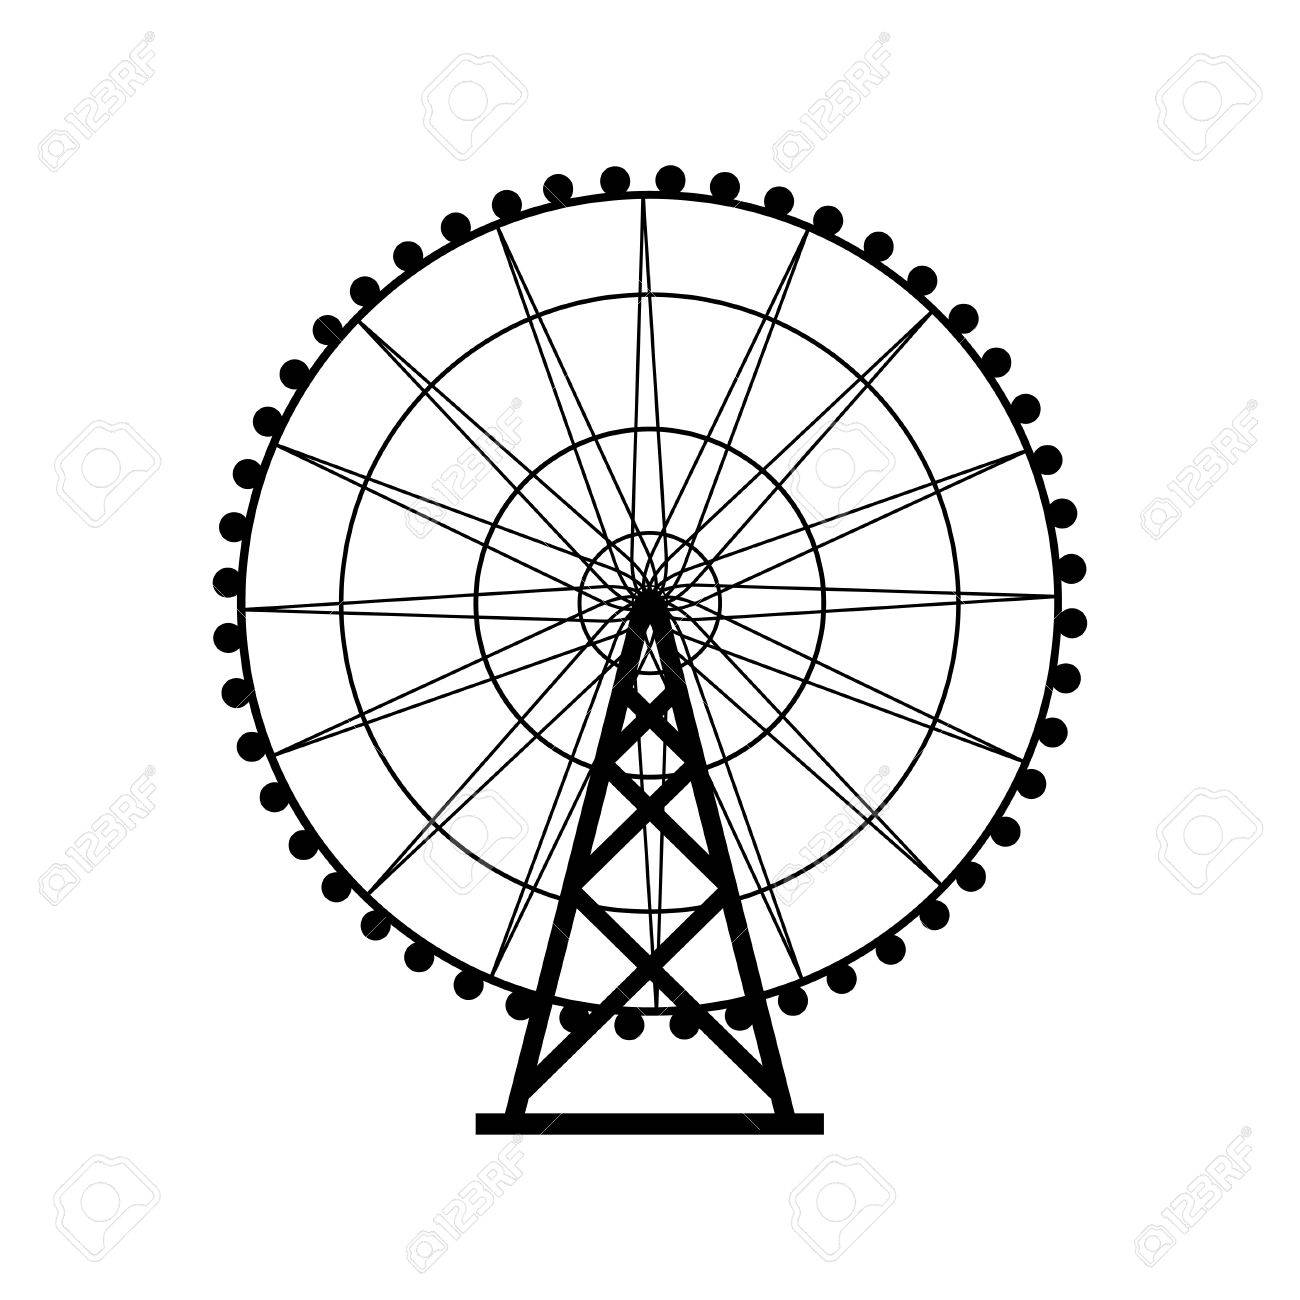 Ferris Wheel Silhouette Circle Carnival Funfair Background Carousel Royalty Free Cliparts Vectors And Stock Illustration Image 57893548